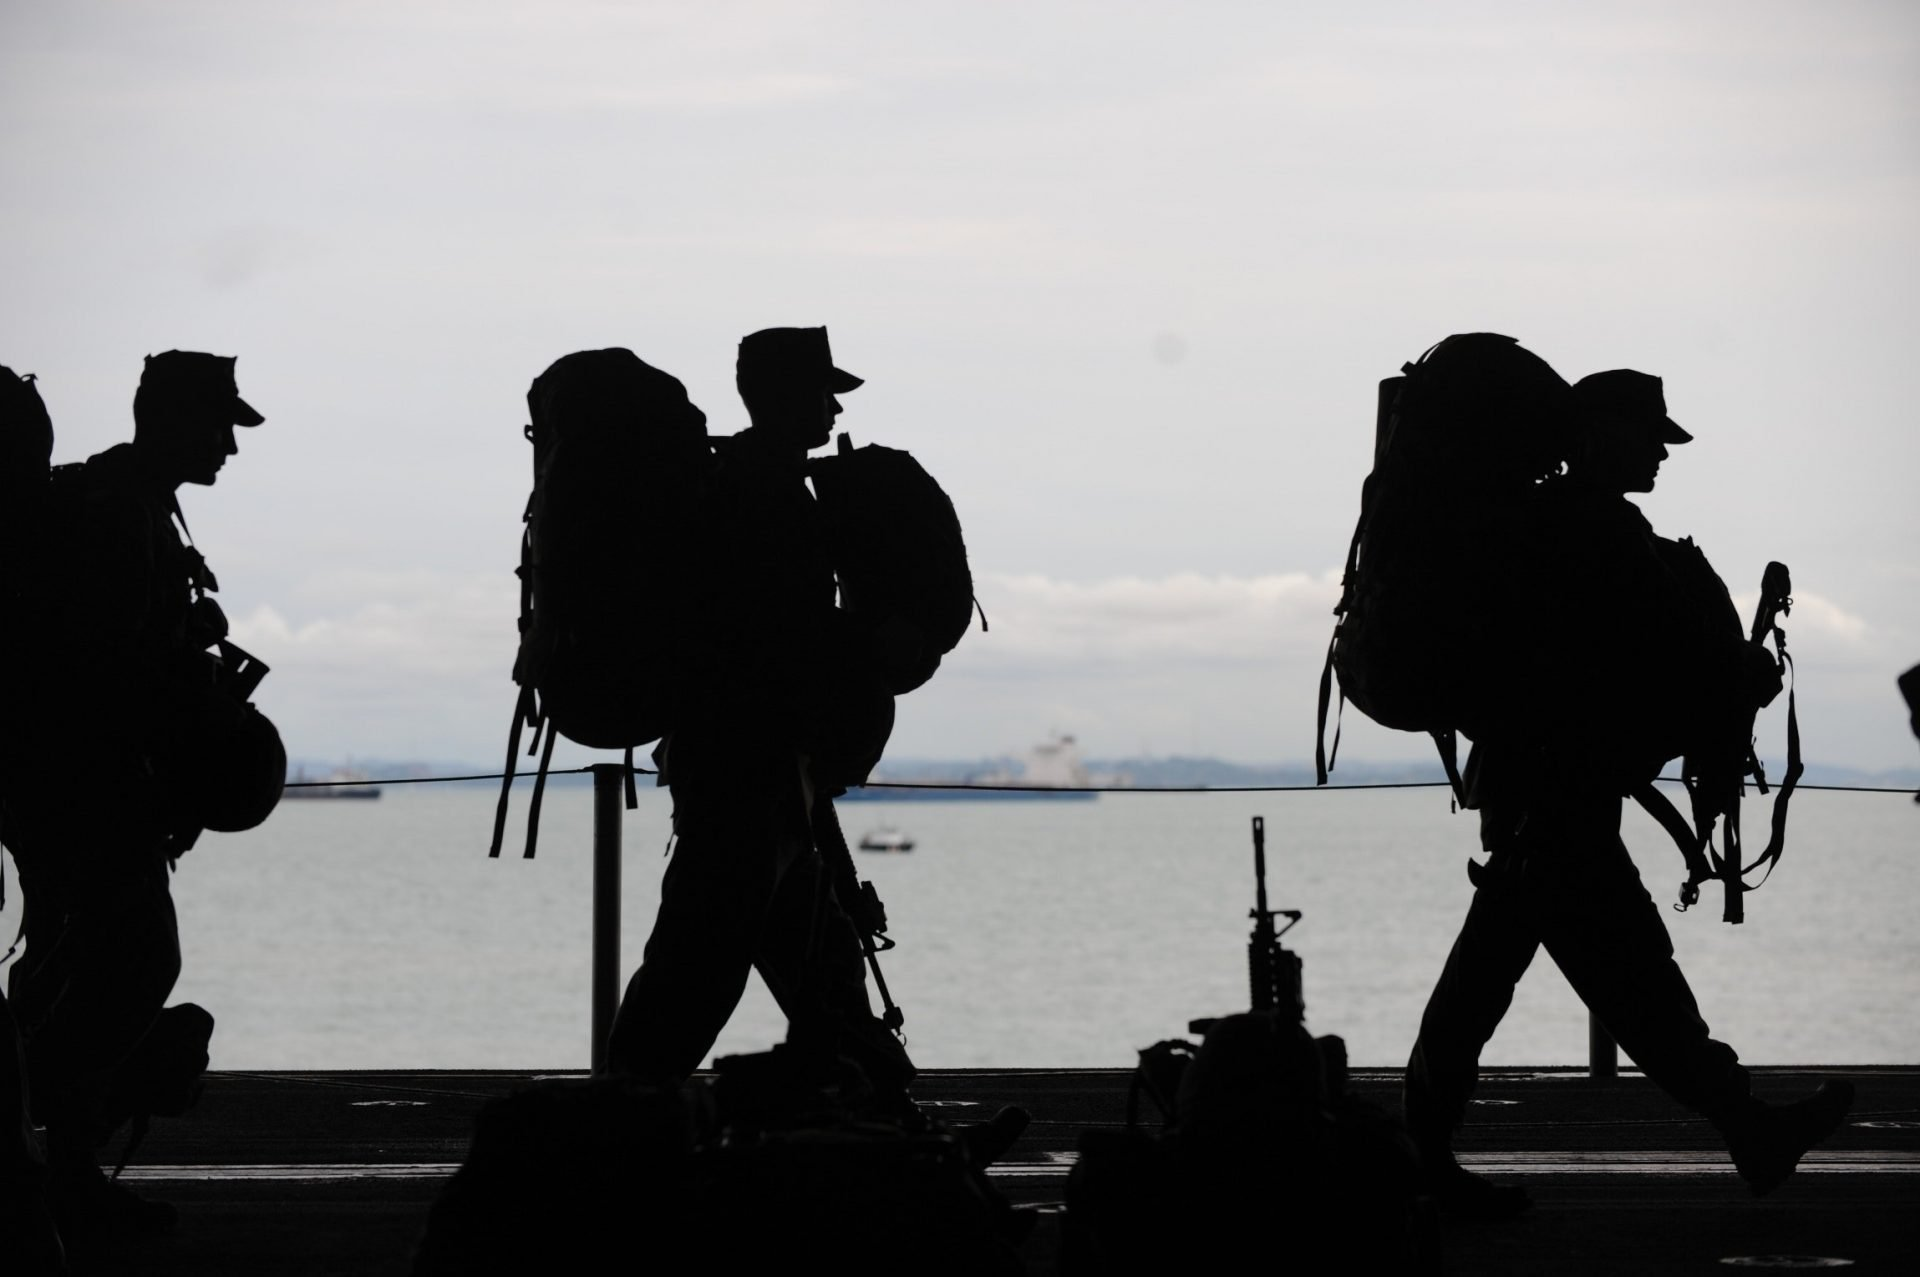 Help the Special Operations Members in their transition! by Gemi Bertran